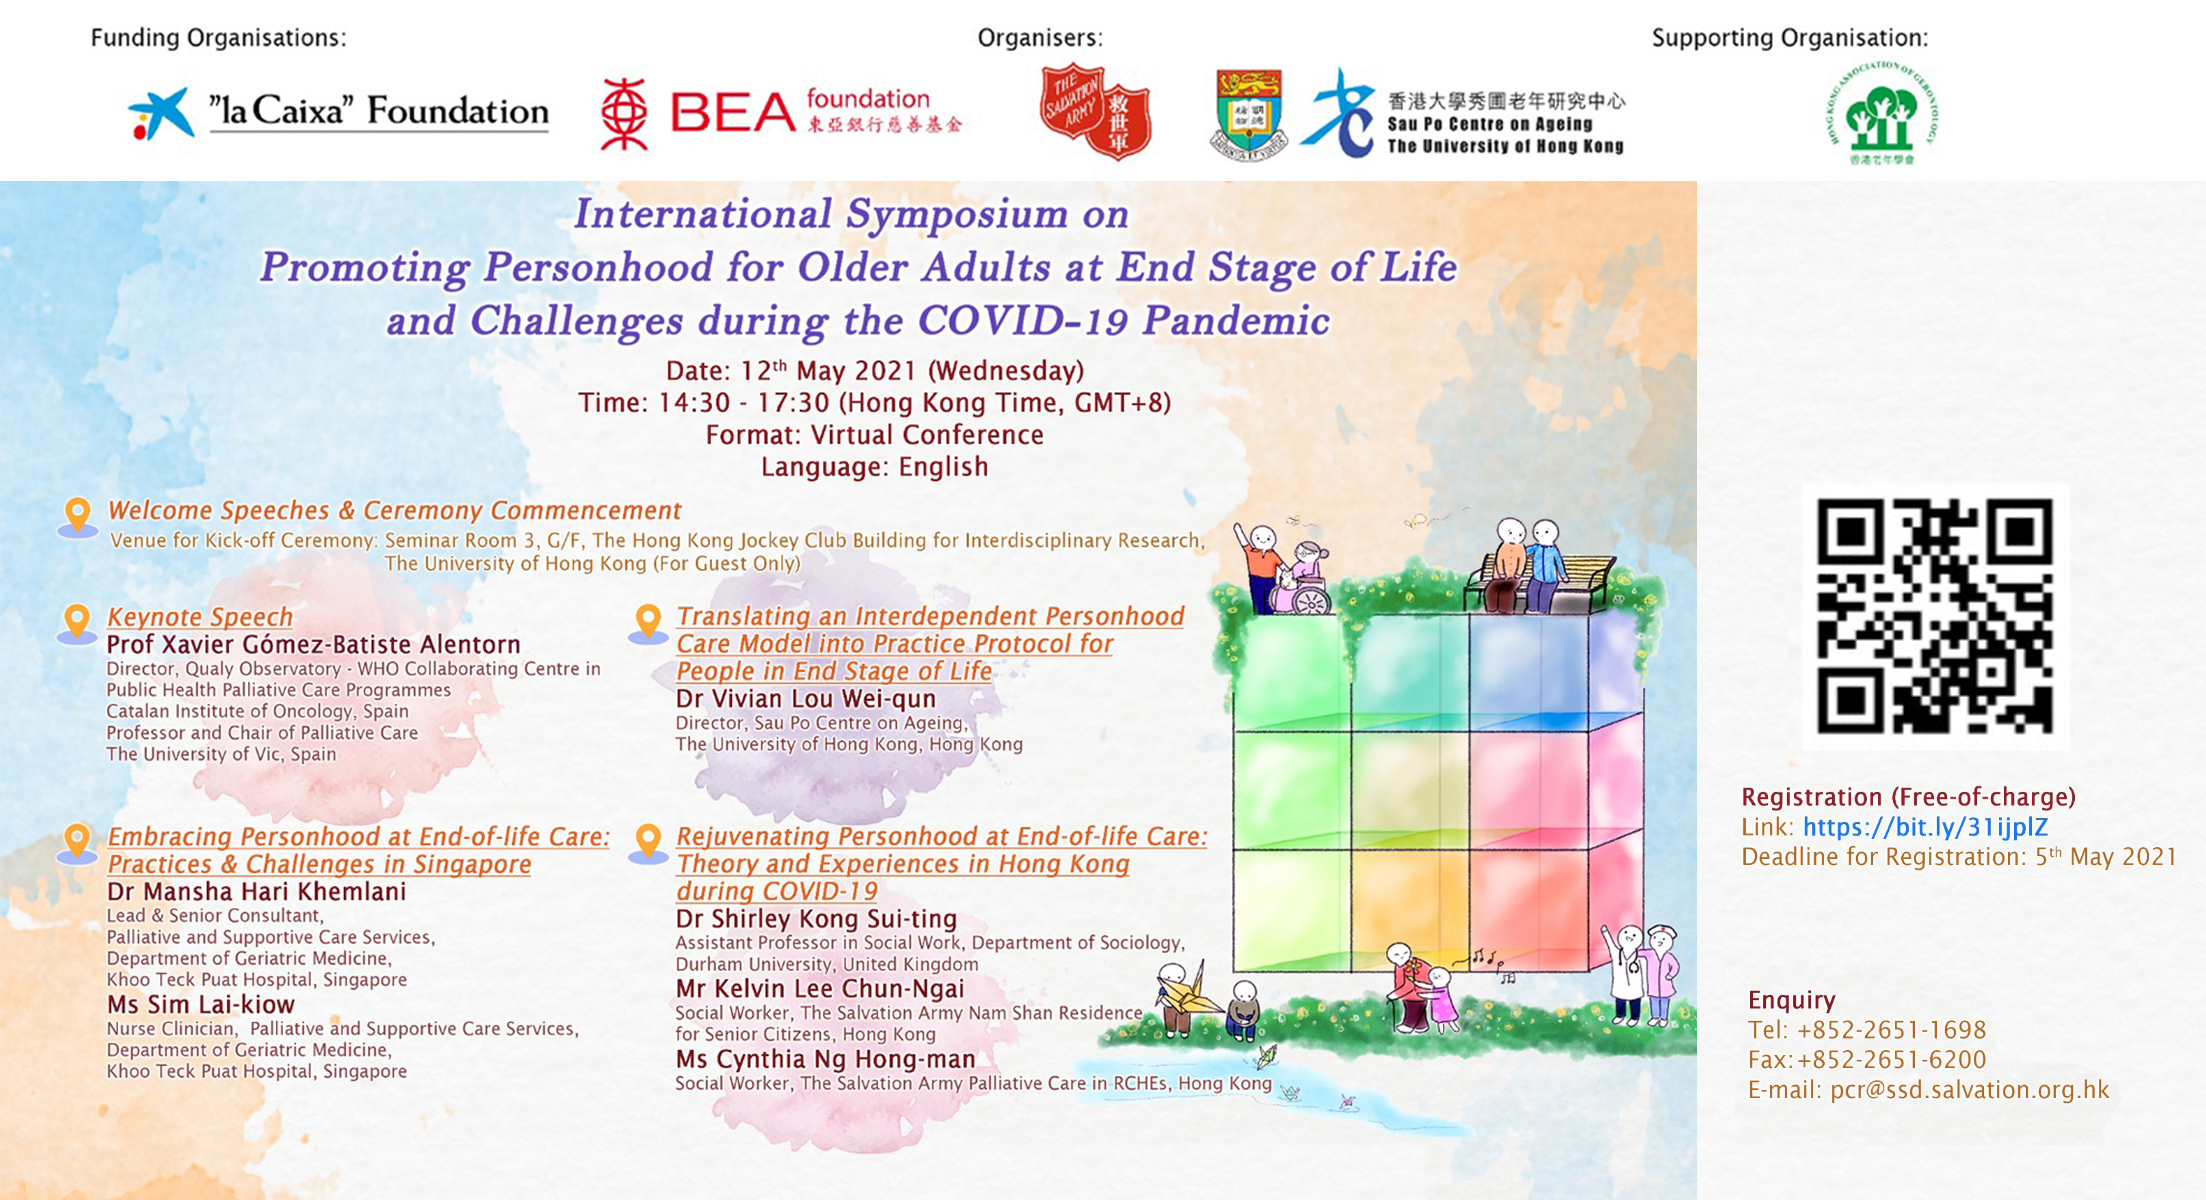 International Symposium on Promoting Personhood for Older Adults at End Stage of Life and Challenges during the COVID-19 Pandemic